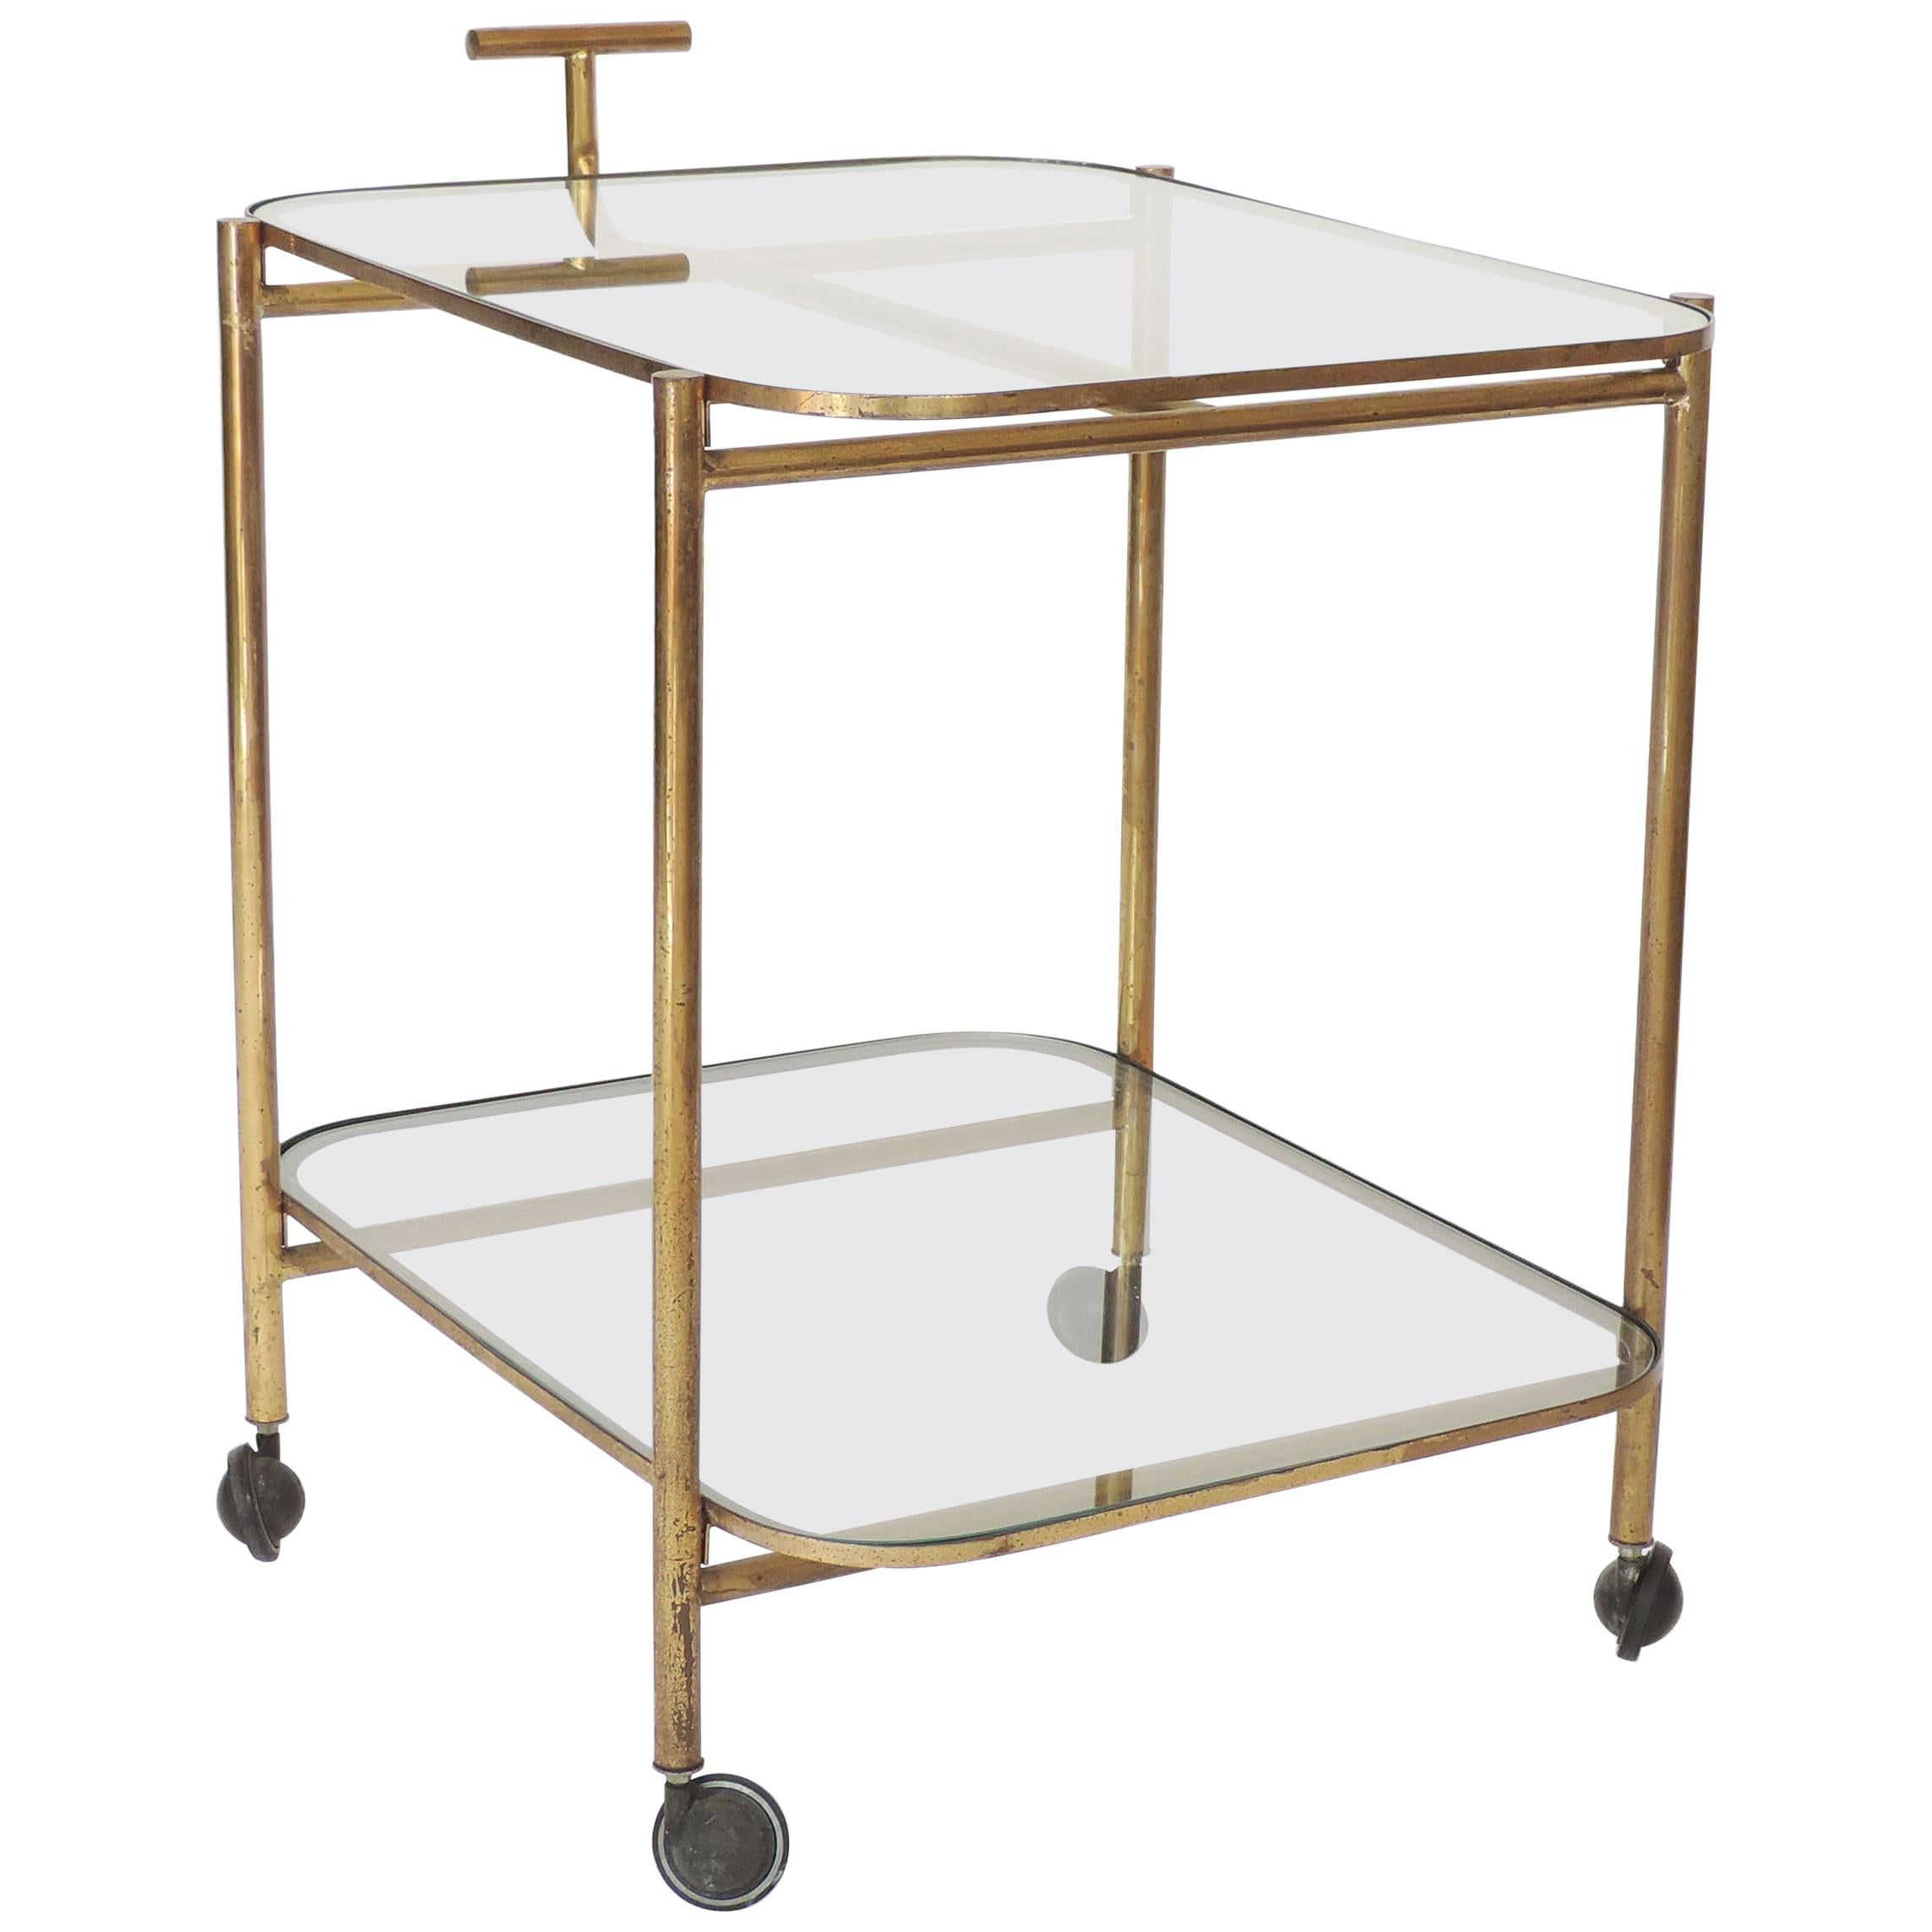 Midcentury Italian Brass and Glass Bar Cart